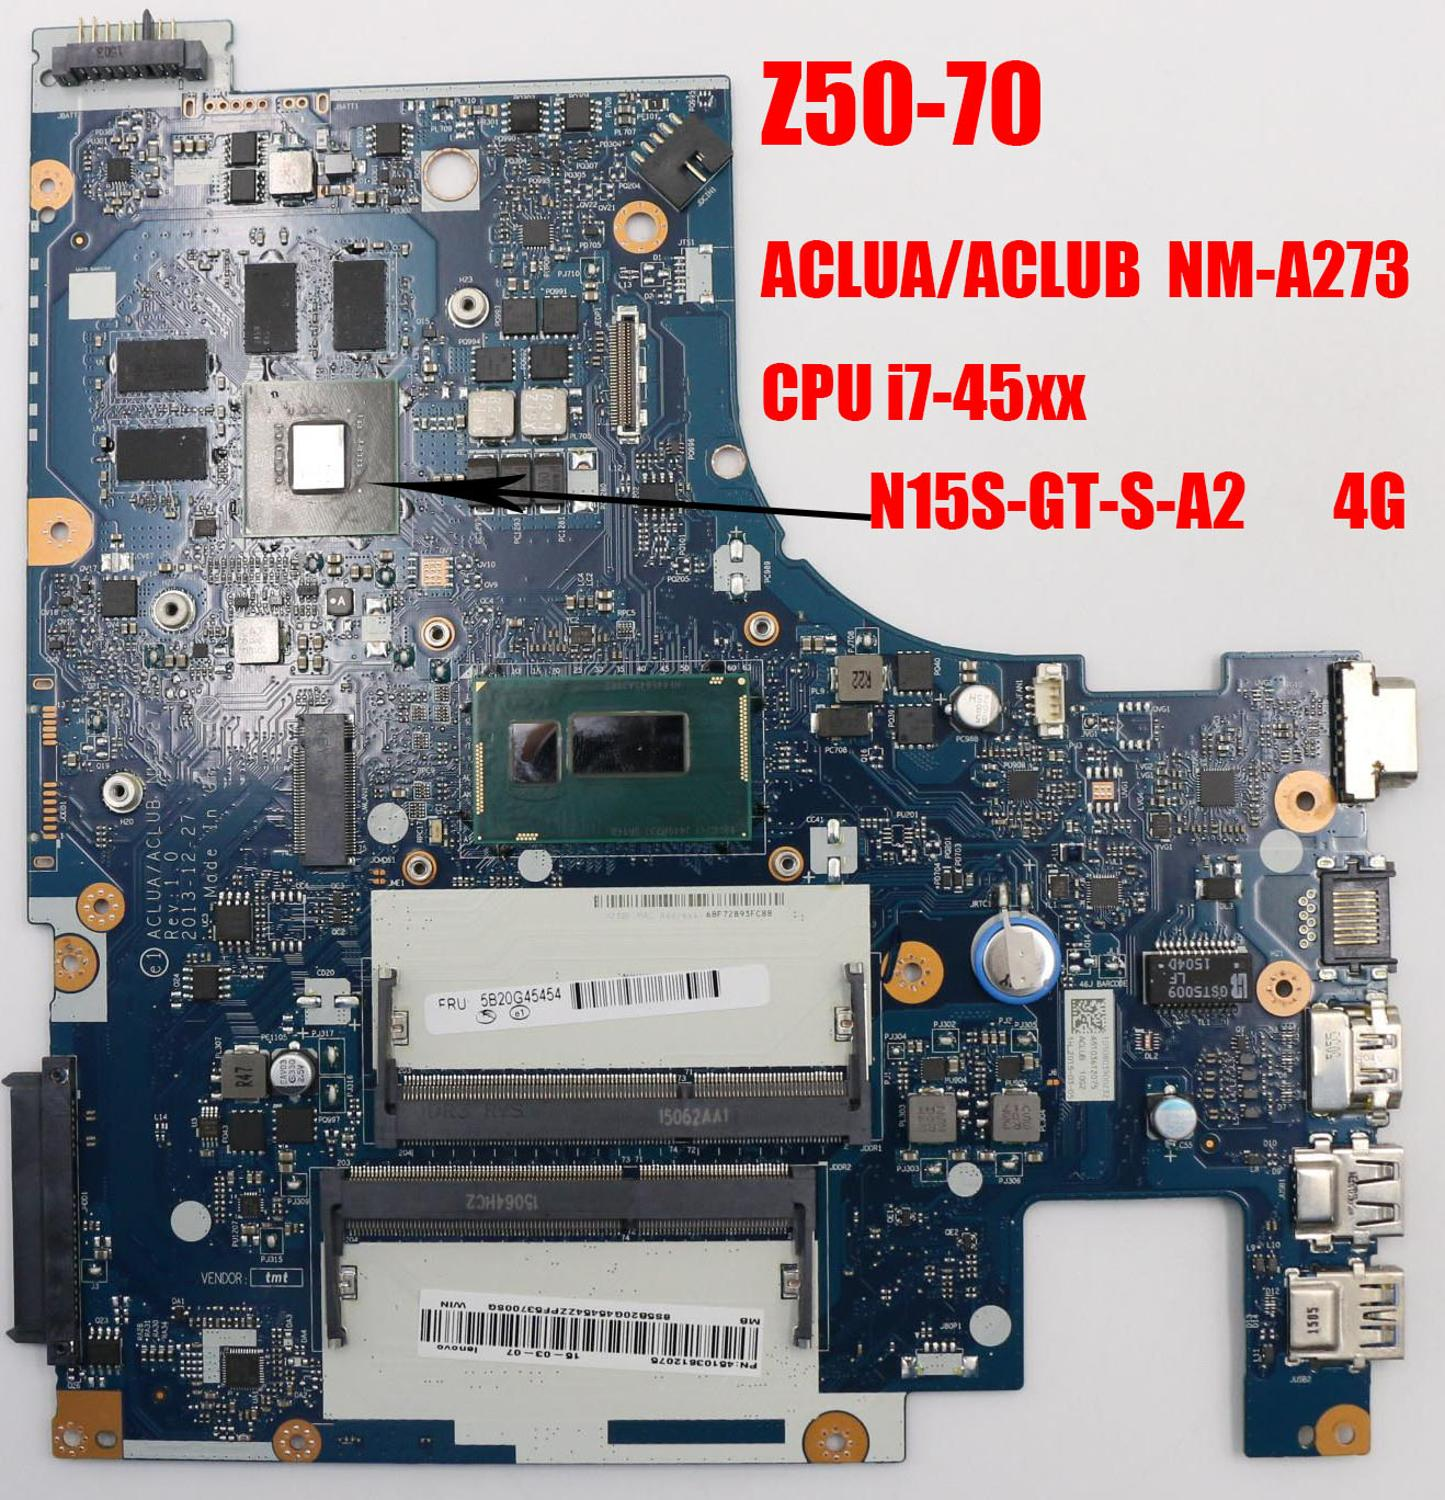 New ACLUA/ACLUB  NM-A273 20E7 For Lenovo Z50-70 Laptop Motherboard CPU I7-45xx  GPU: GF 840M  4GB  DDR3 FRU 90006973 5B20G45504